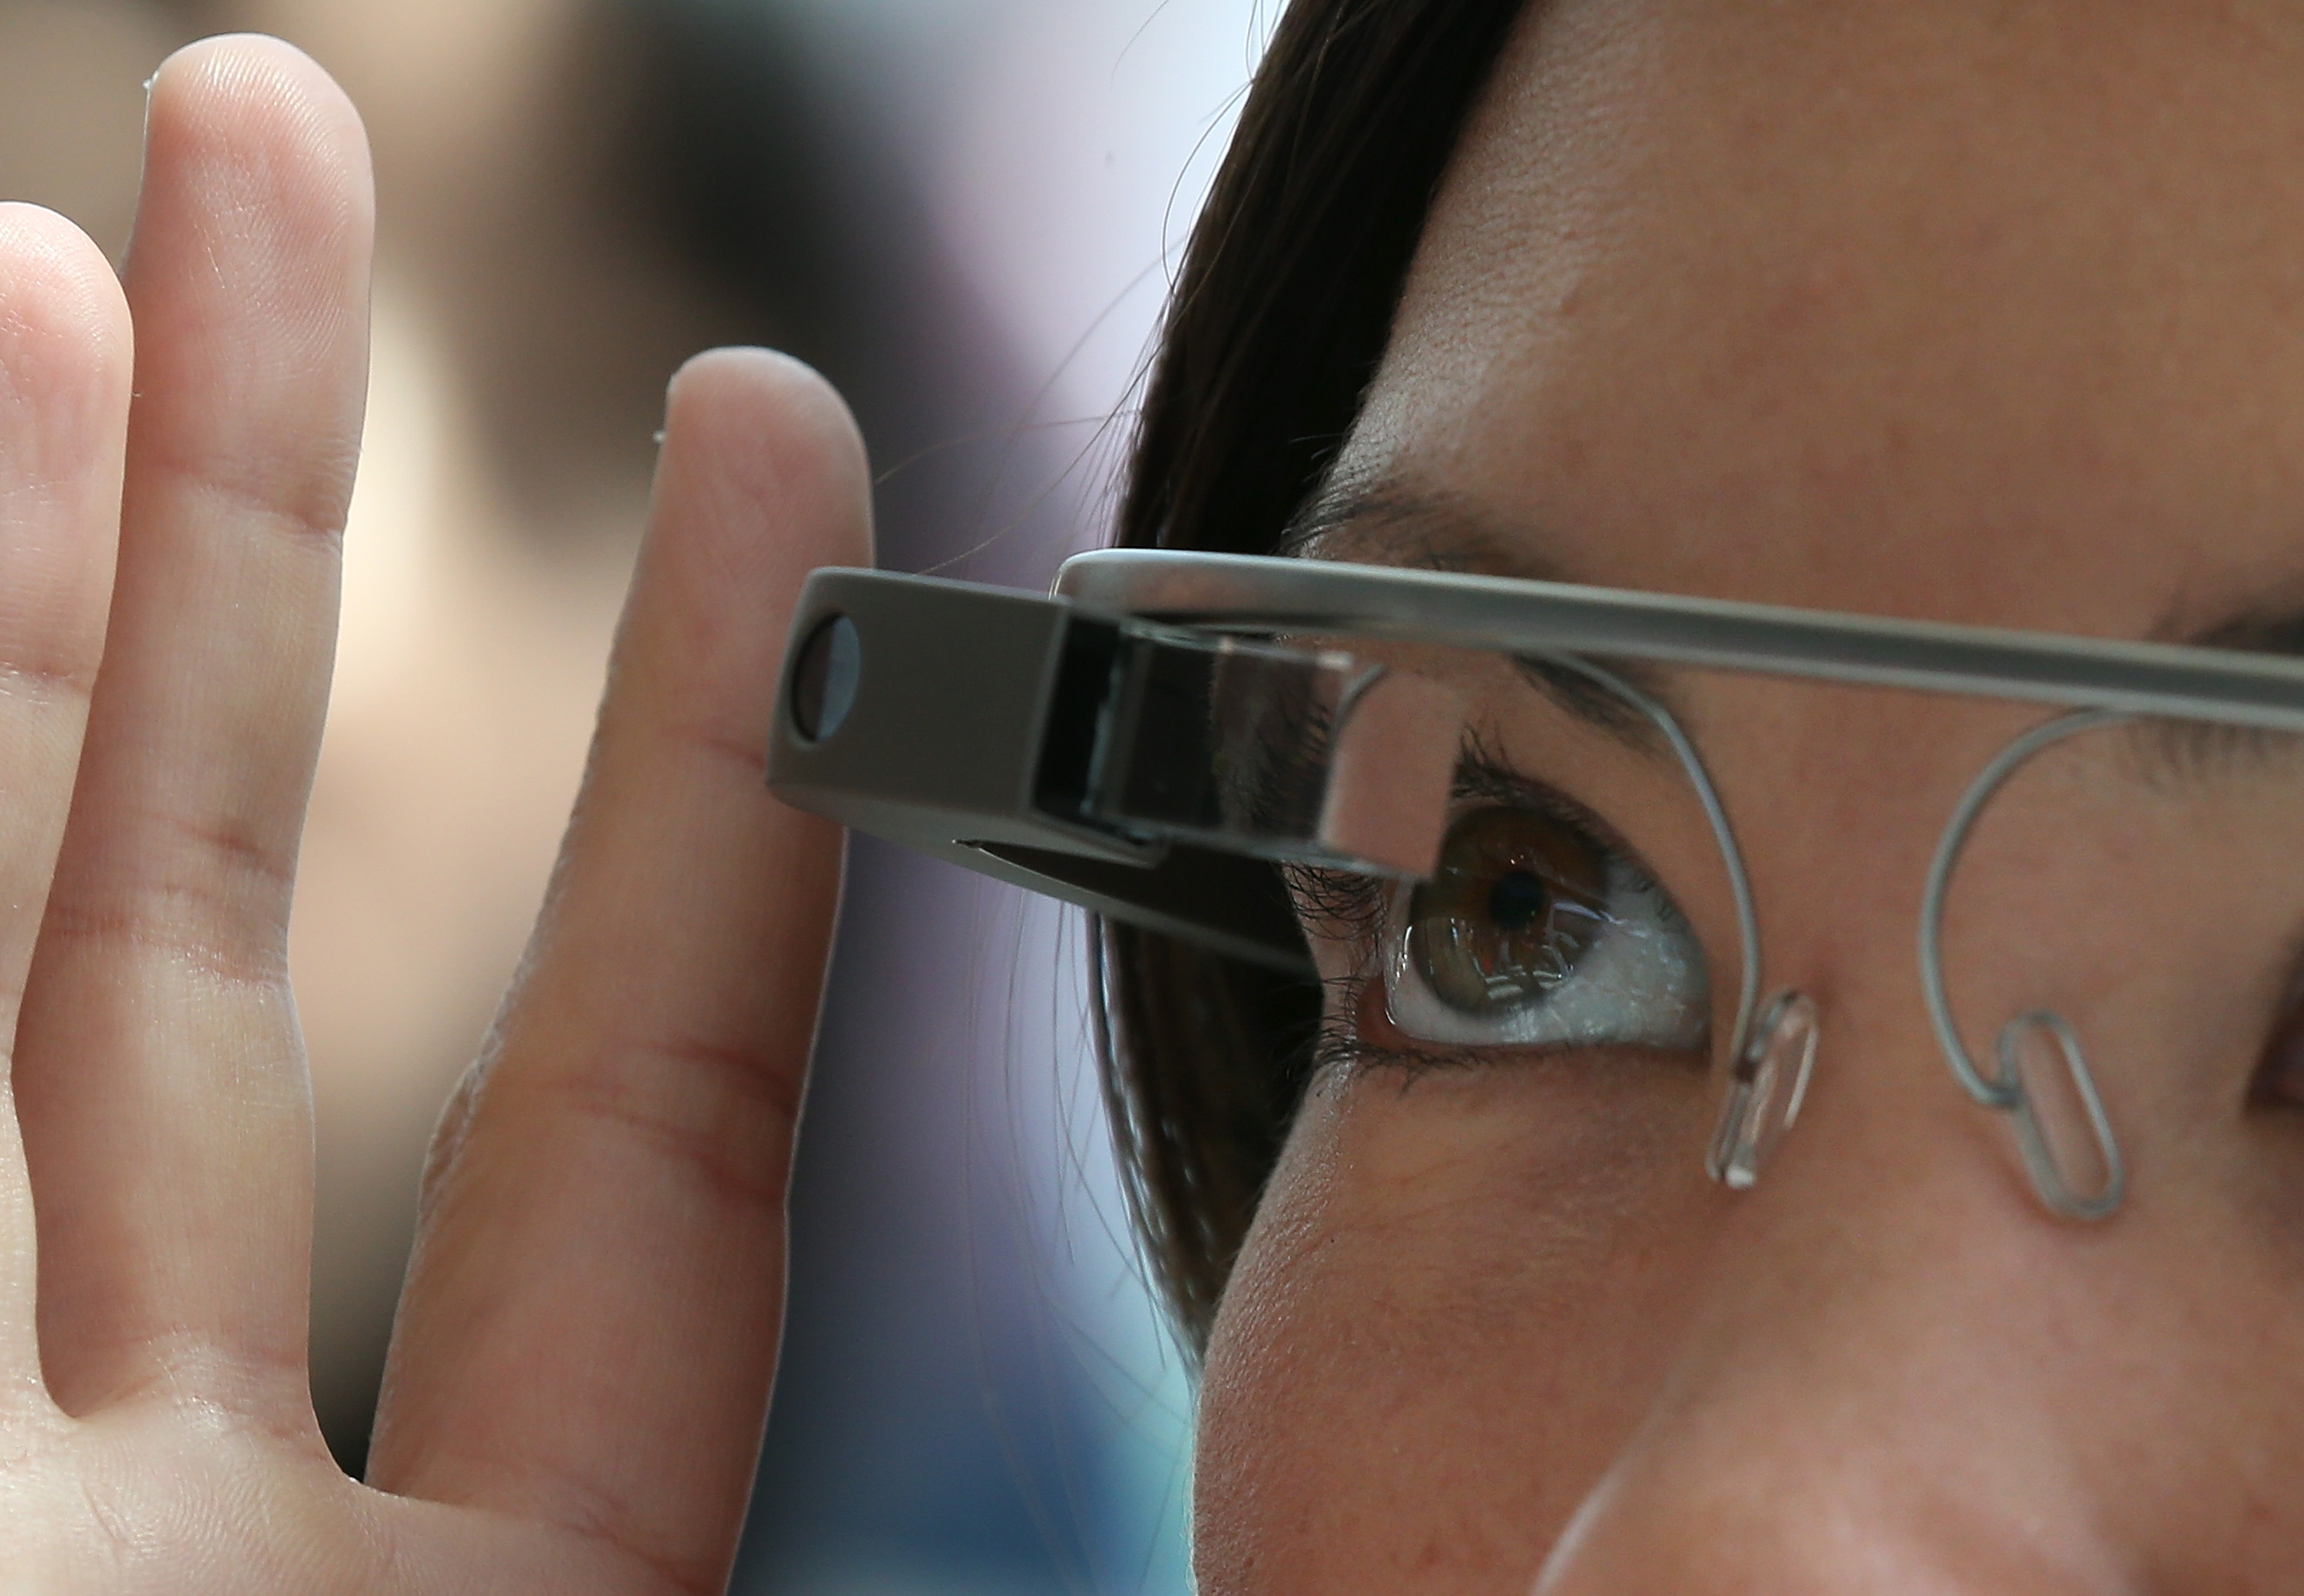 An attendee tries Google Glass during the Google I/O developer conference  in San Francisco, CA on May 17, 2013.